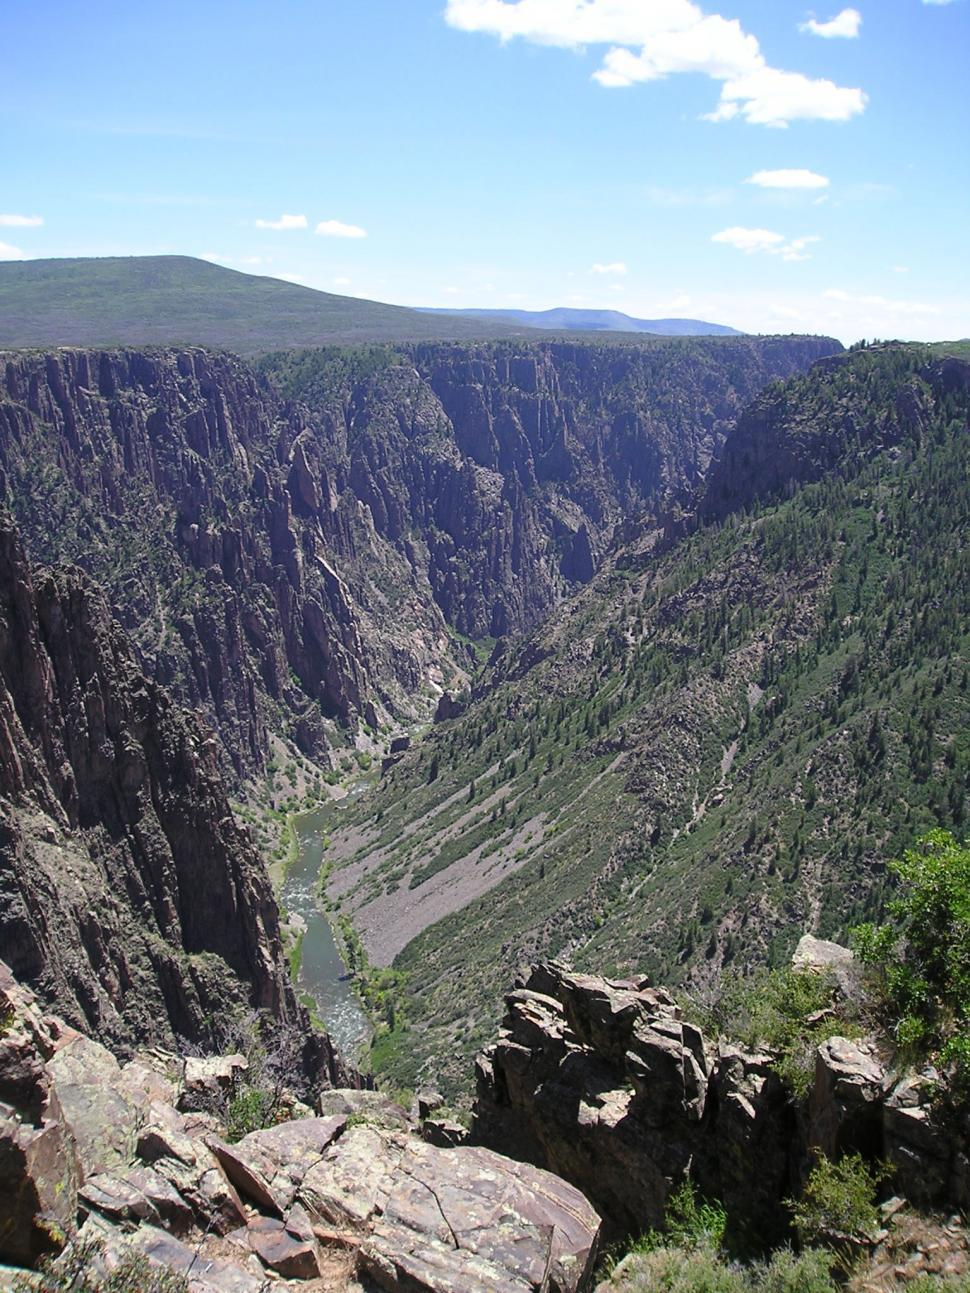 Download Free Stock Photo of Black Canyon